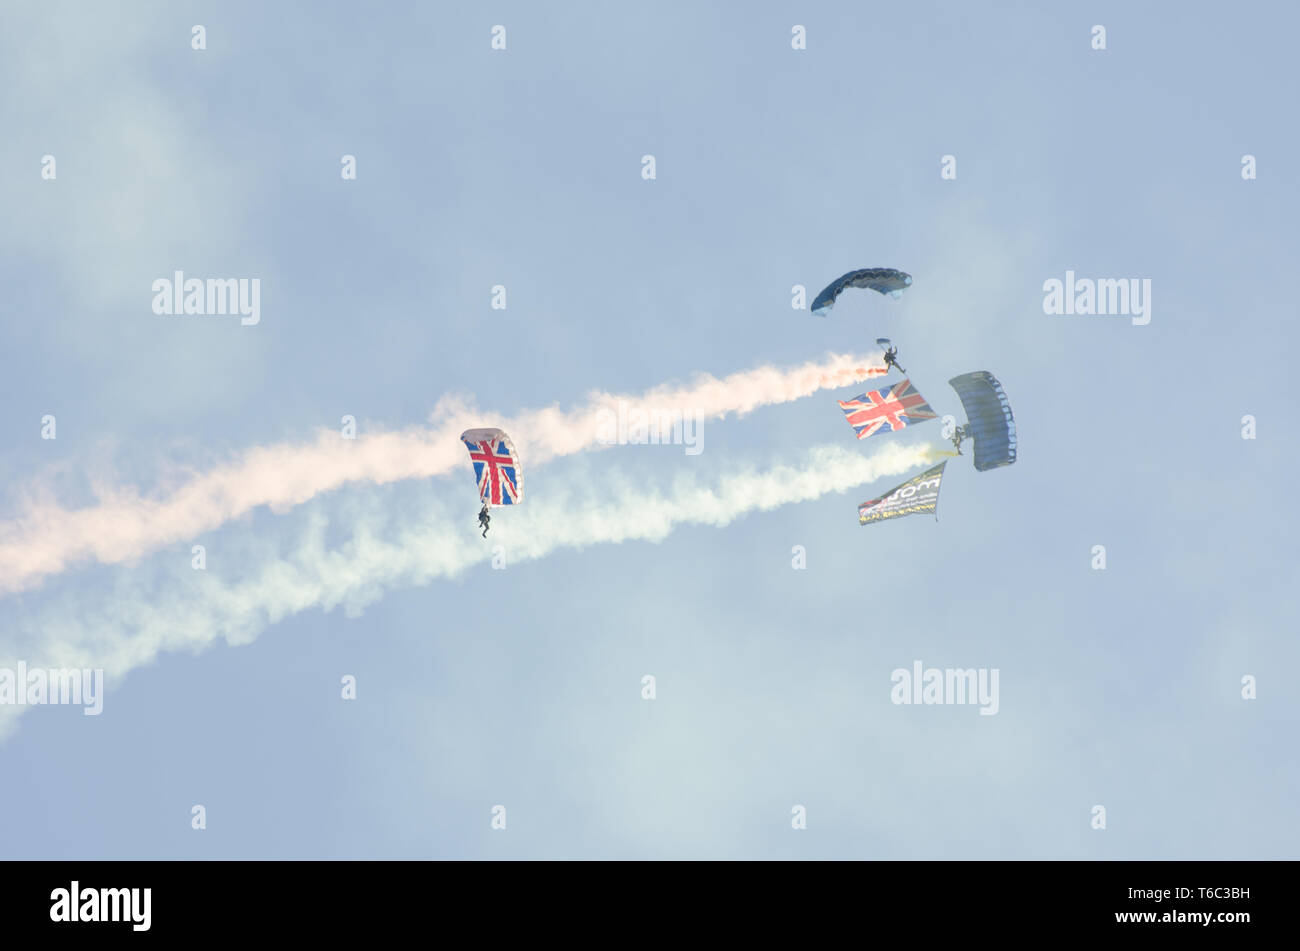 British Army Parachutists descending  over t Clacton free airshow - Stock Image